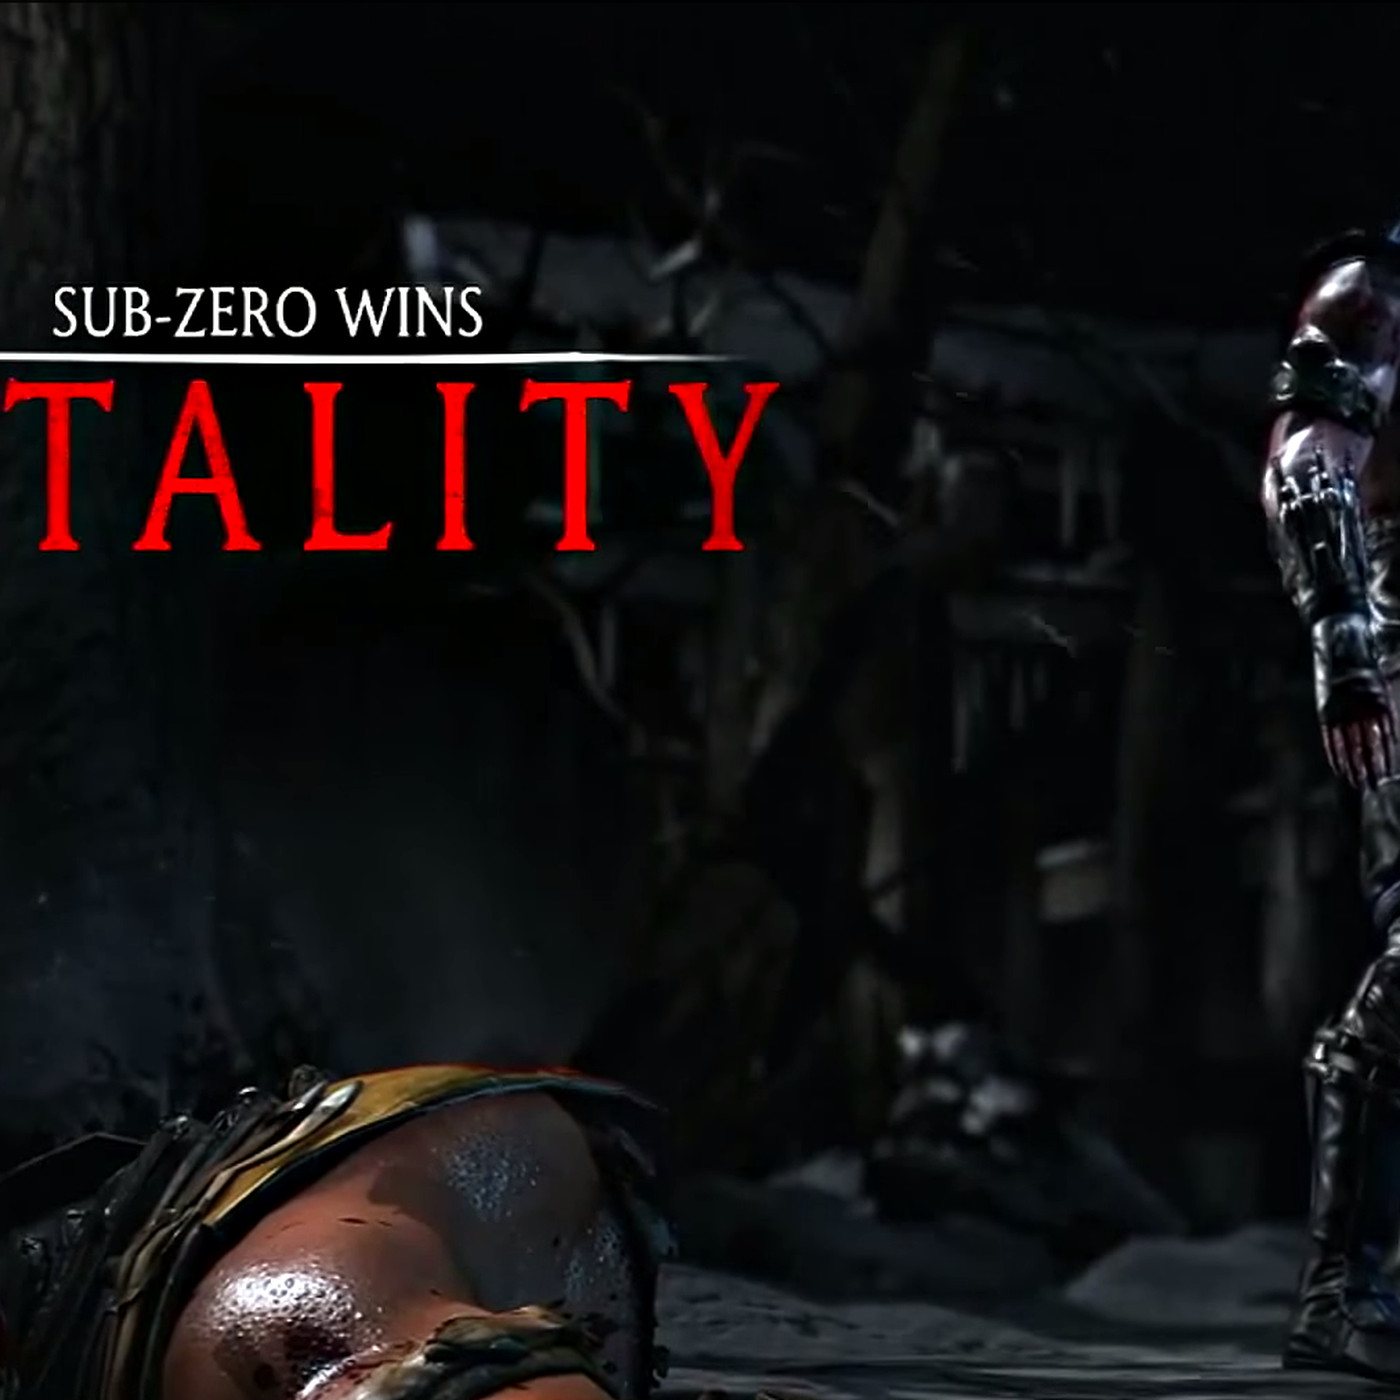 Mortal Kombat X Sells Easy Fatalities Downloadable Content At